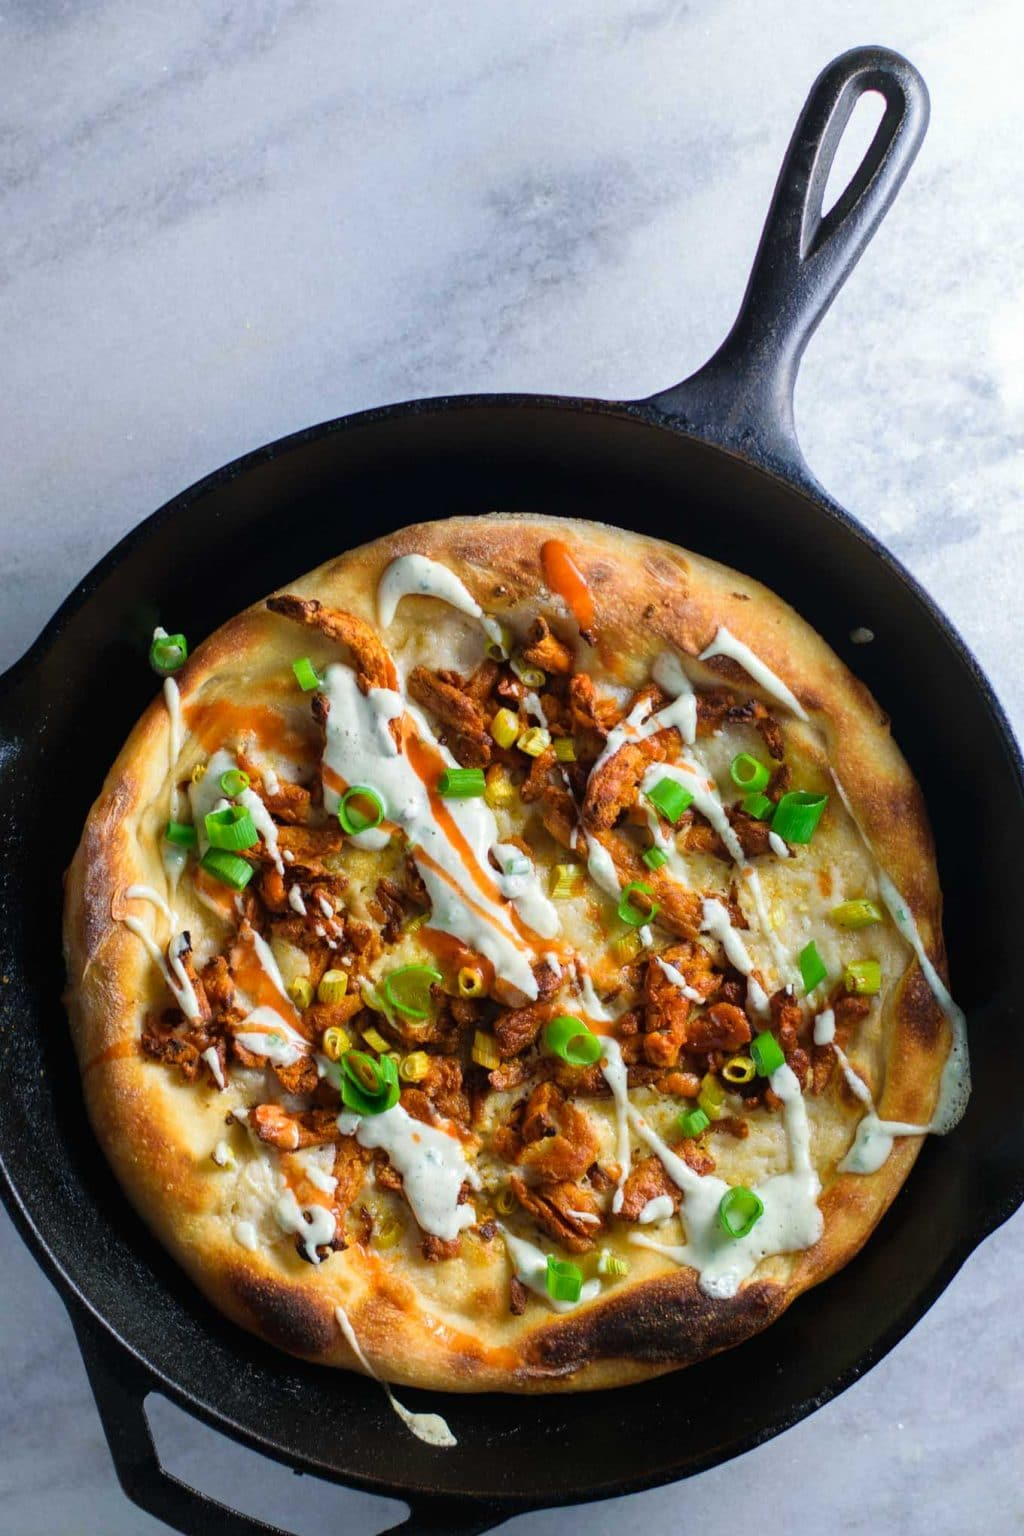 buffalo soy curl pizza with ranch dressing drizzle